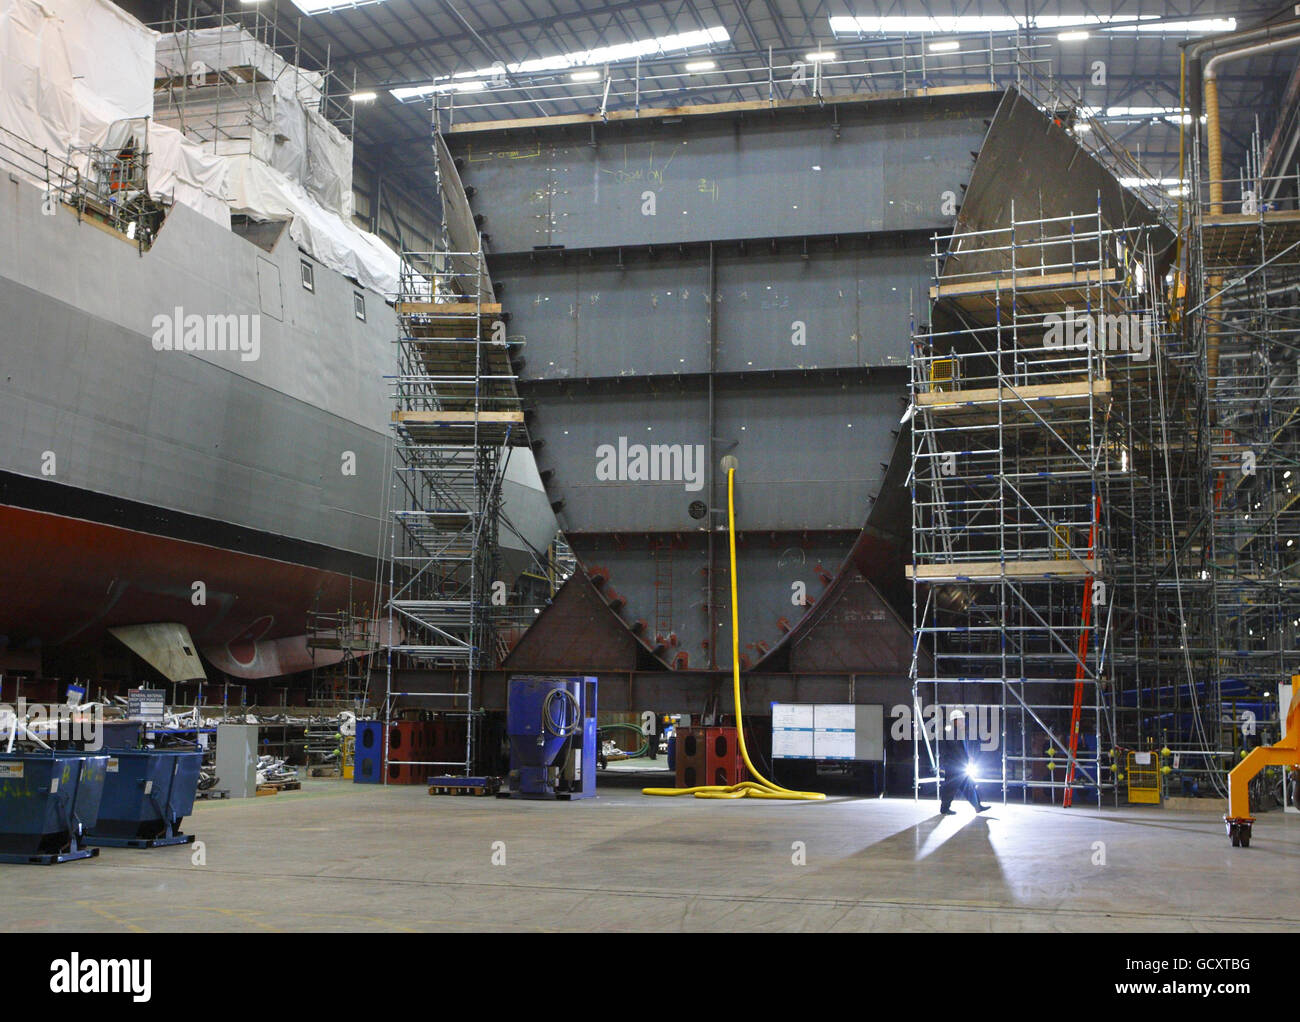 New carrier construction - Stock Image